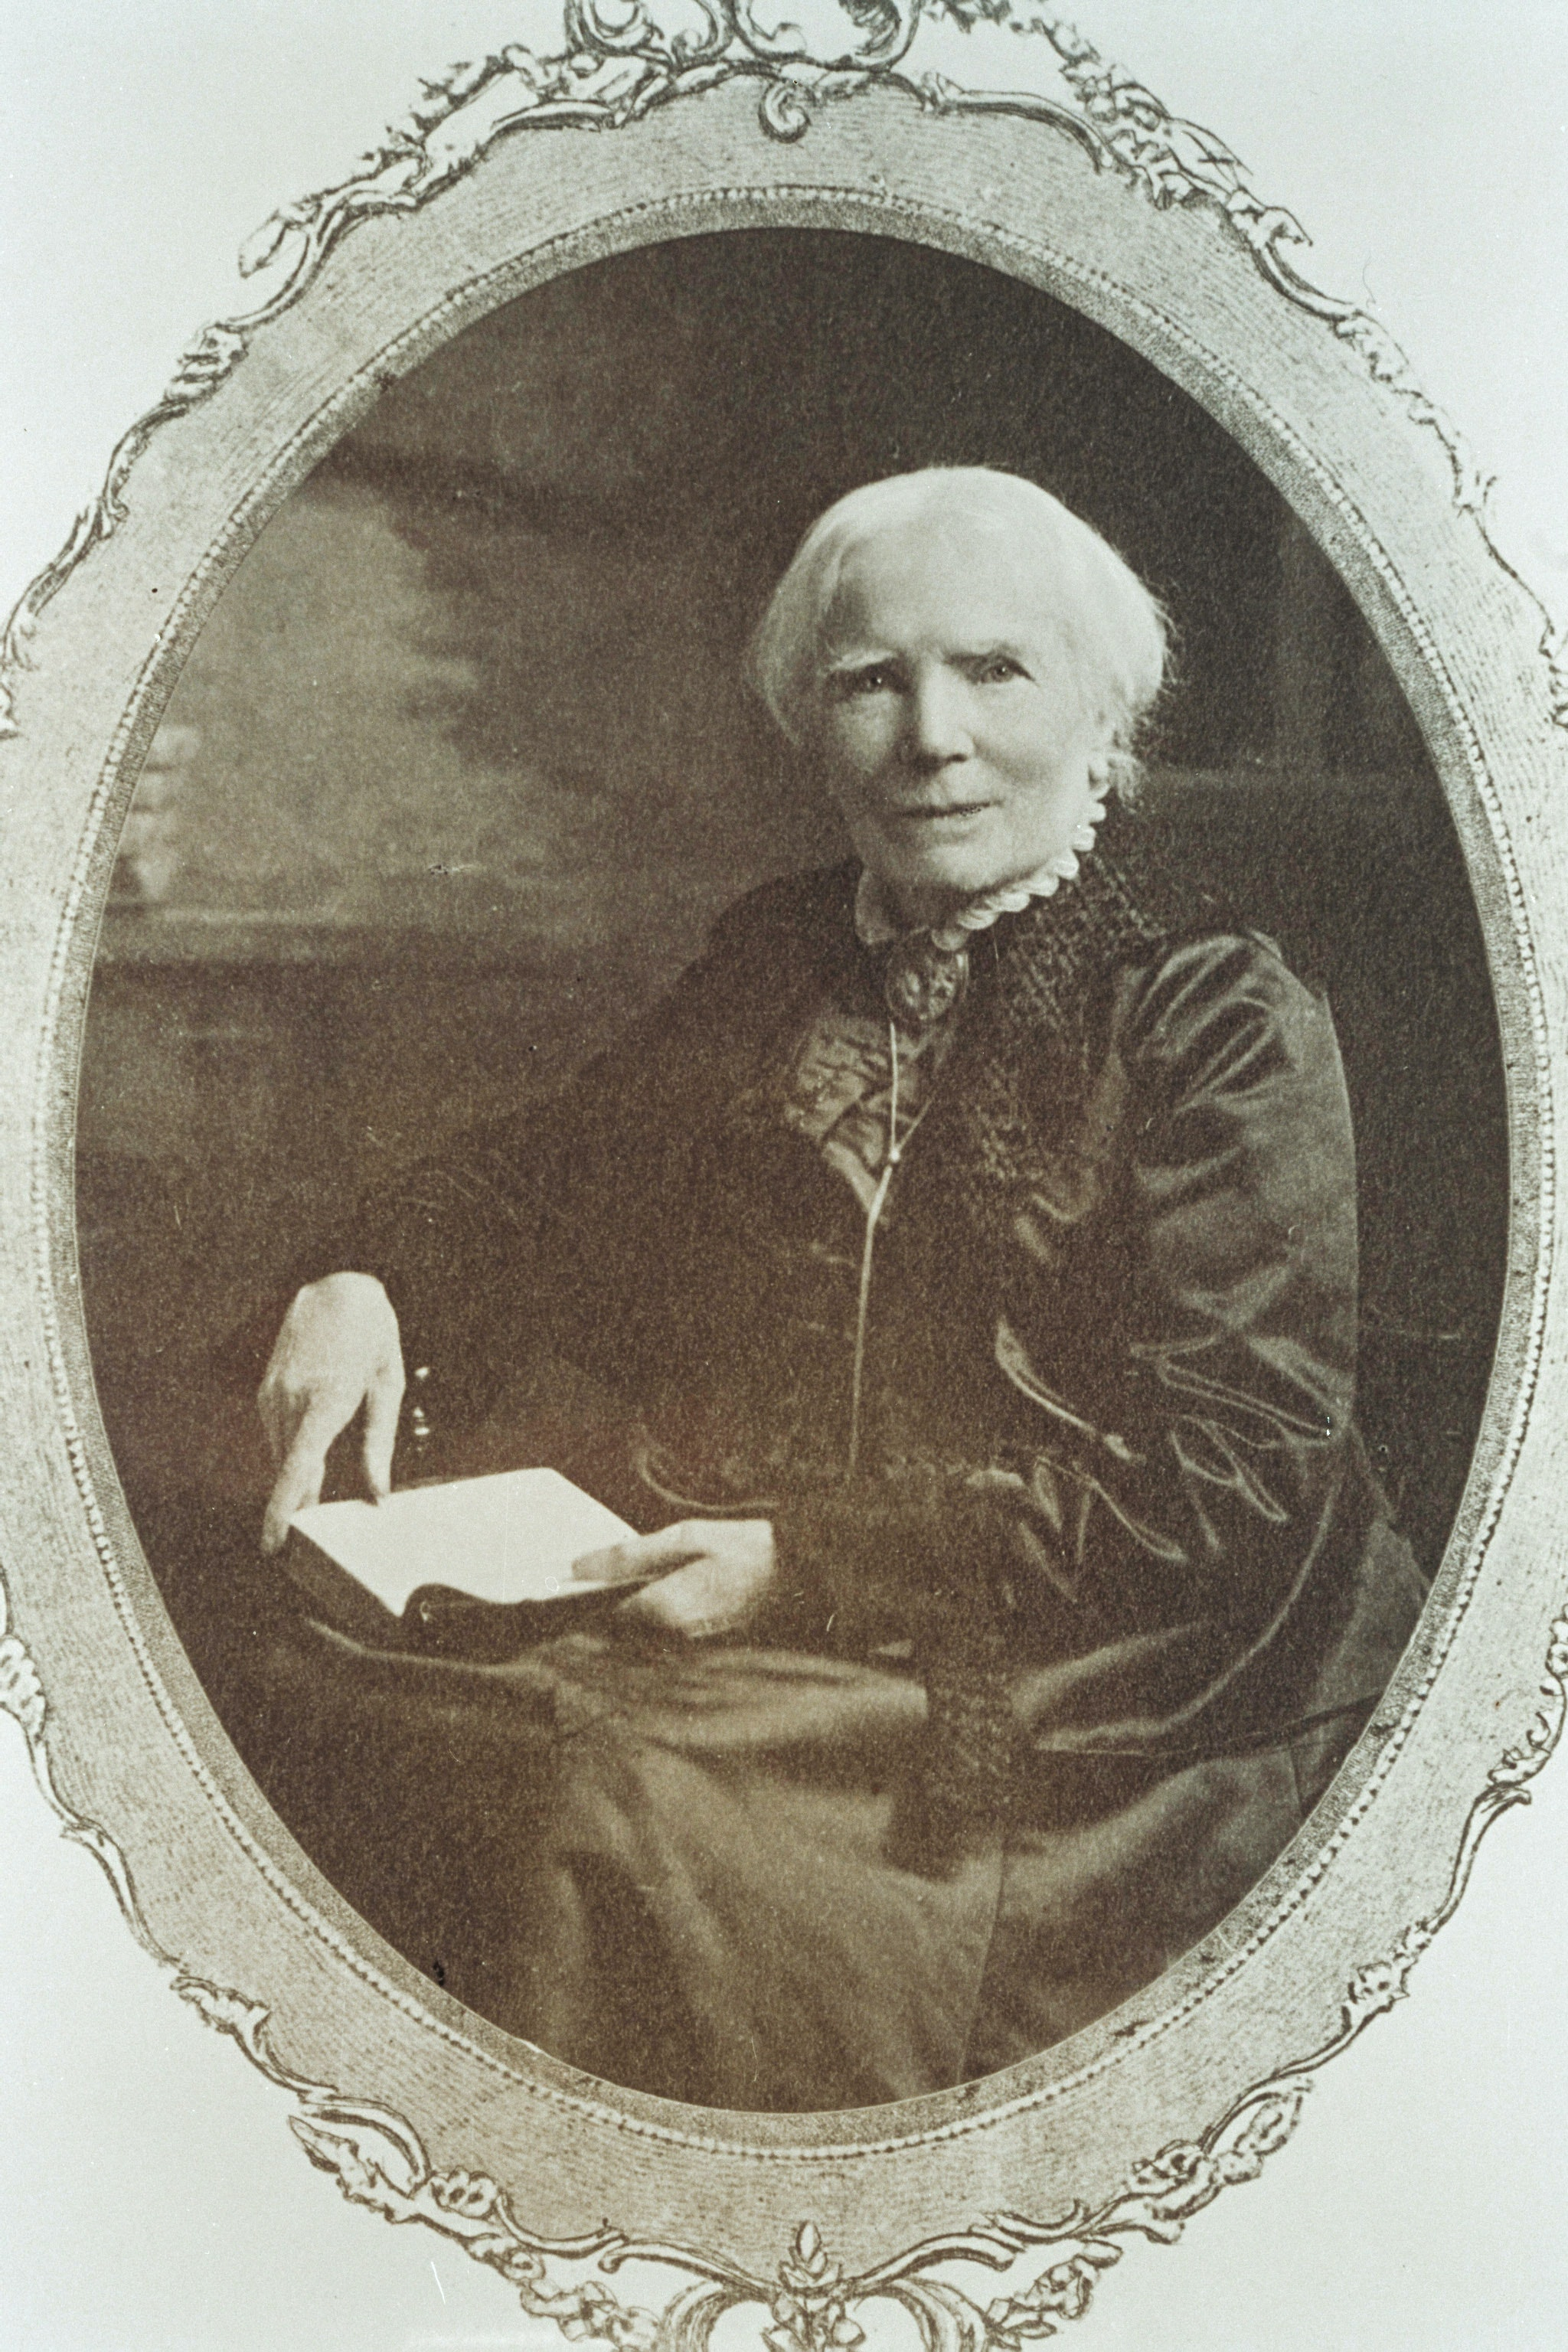 Elizabeth Blackwell seated with an open book on her lap